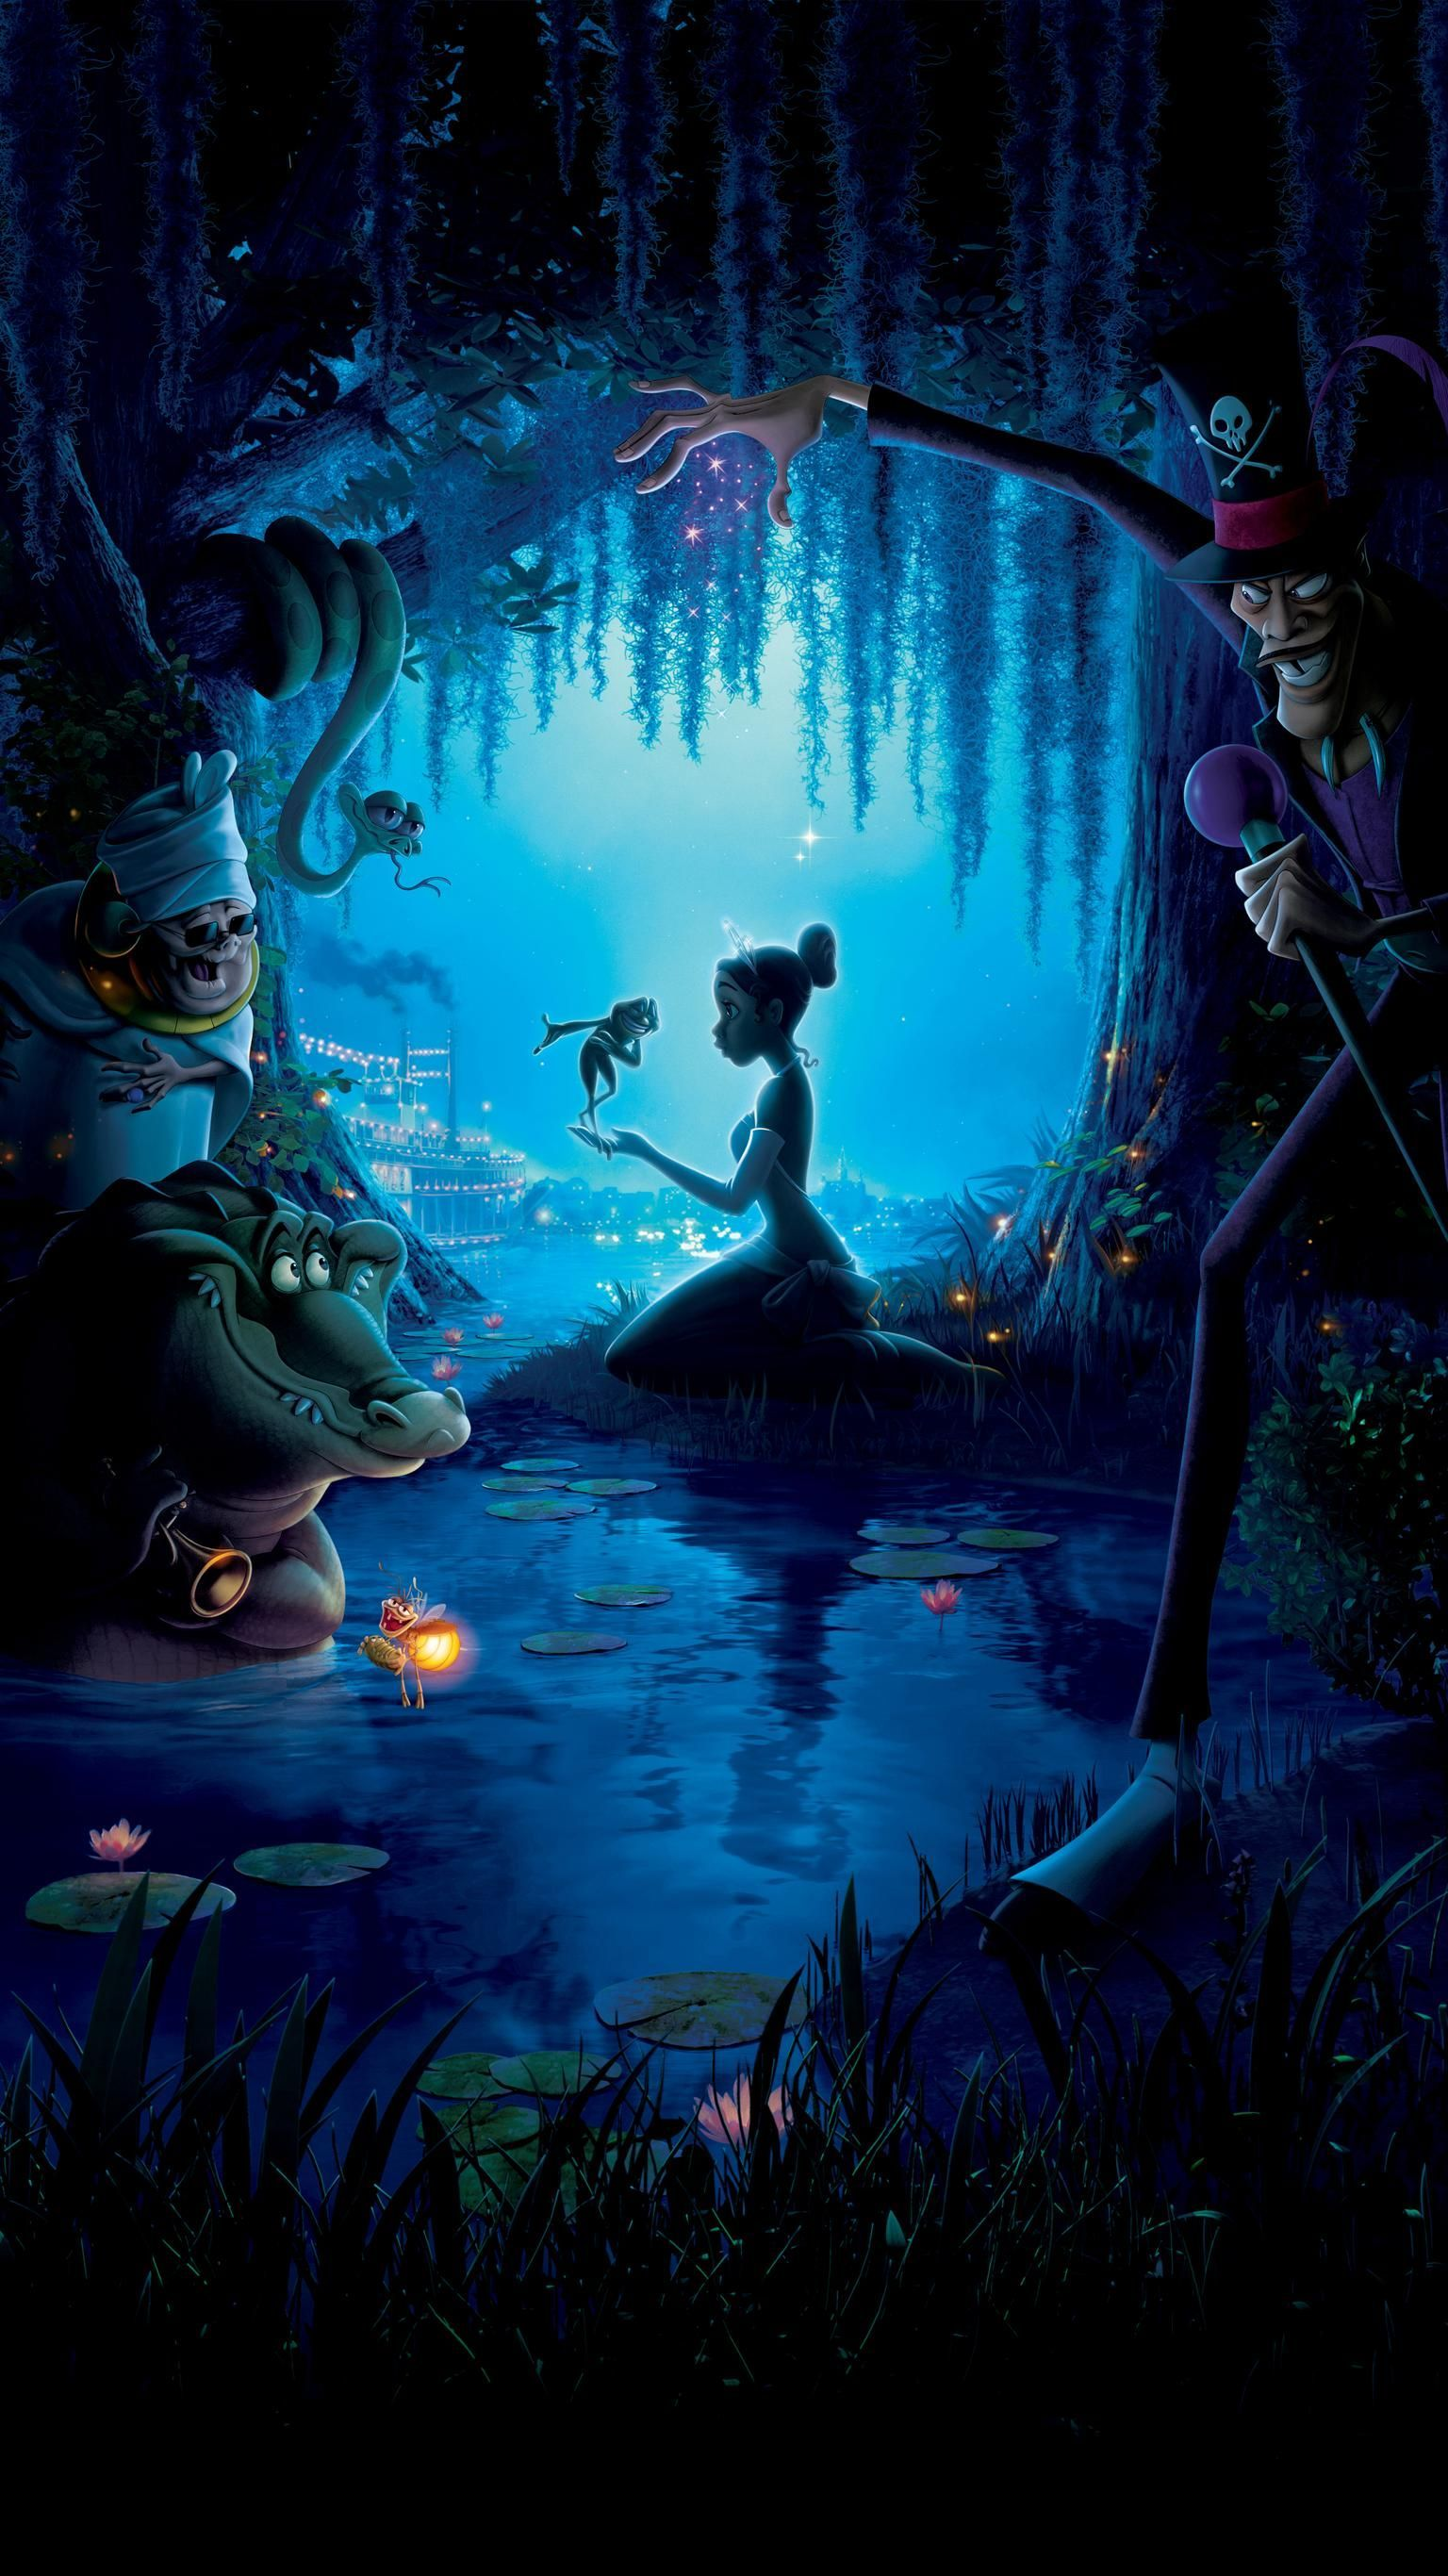 The Princess And The Frog 2009 Phone Wallpaper Moviemania In 2020 Wallpaper Iphone Disney Princess Disney Princess Wallpaper Disney Background